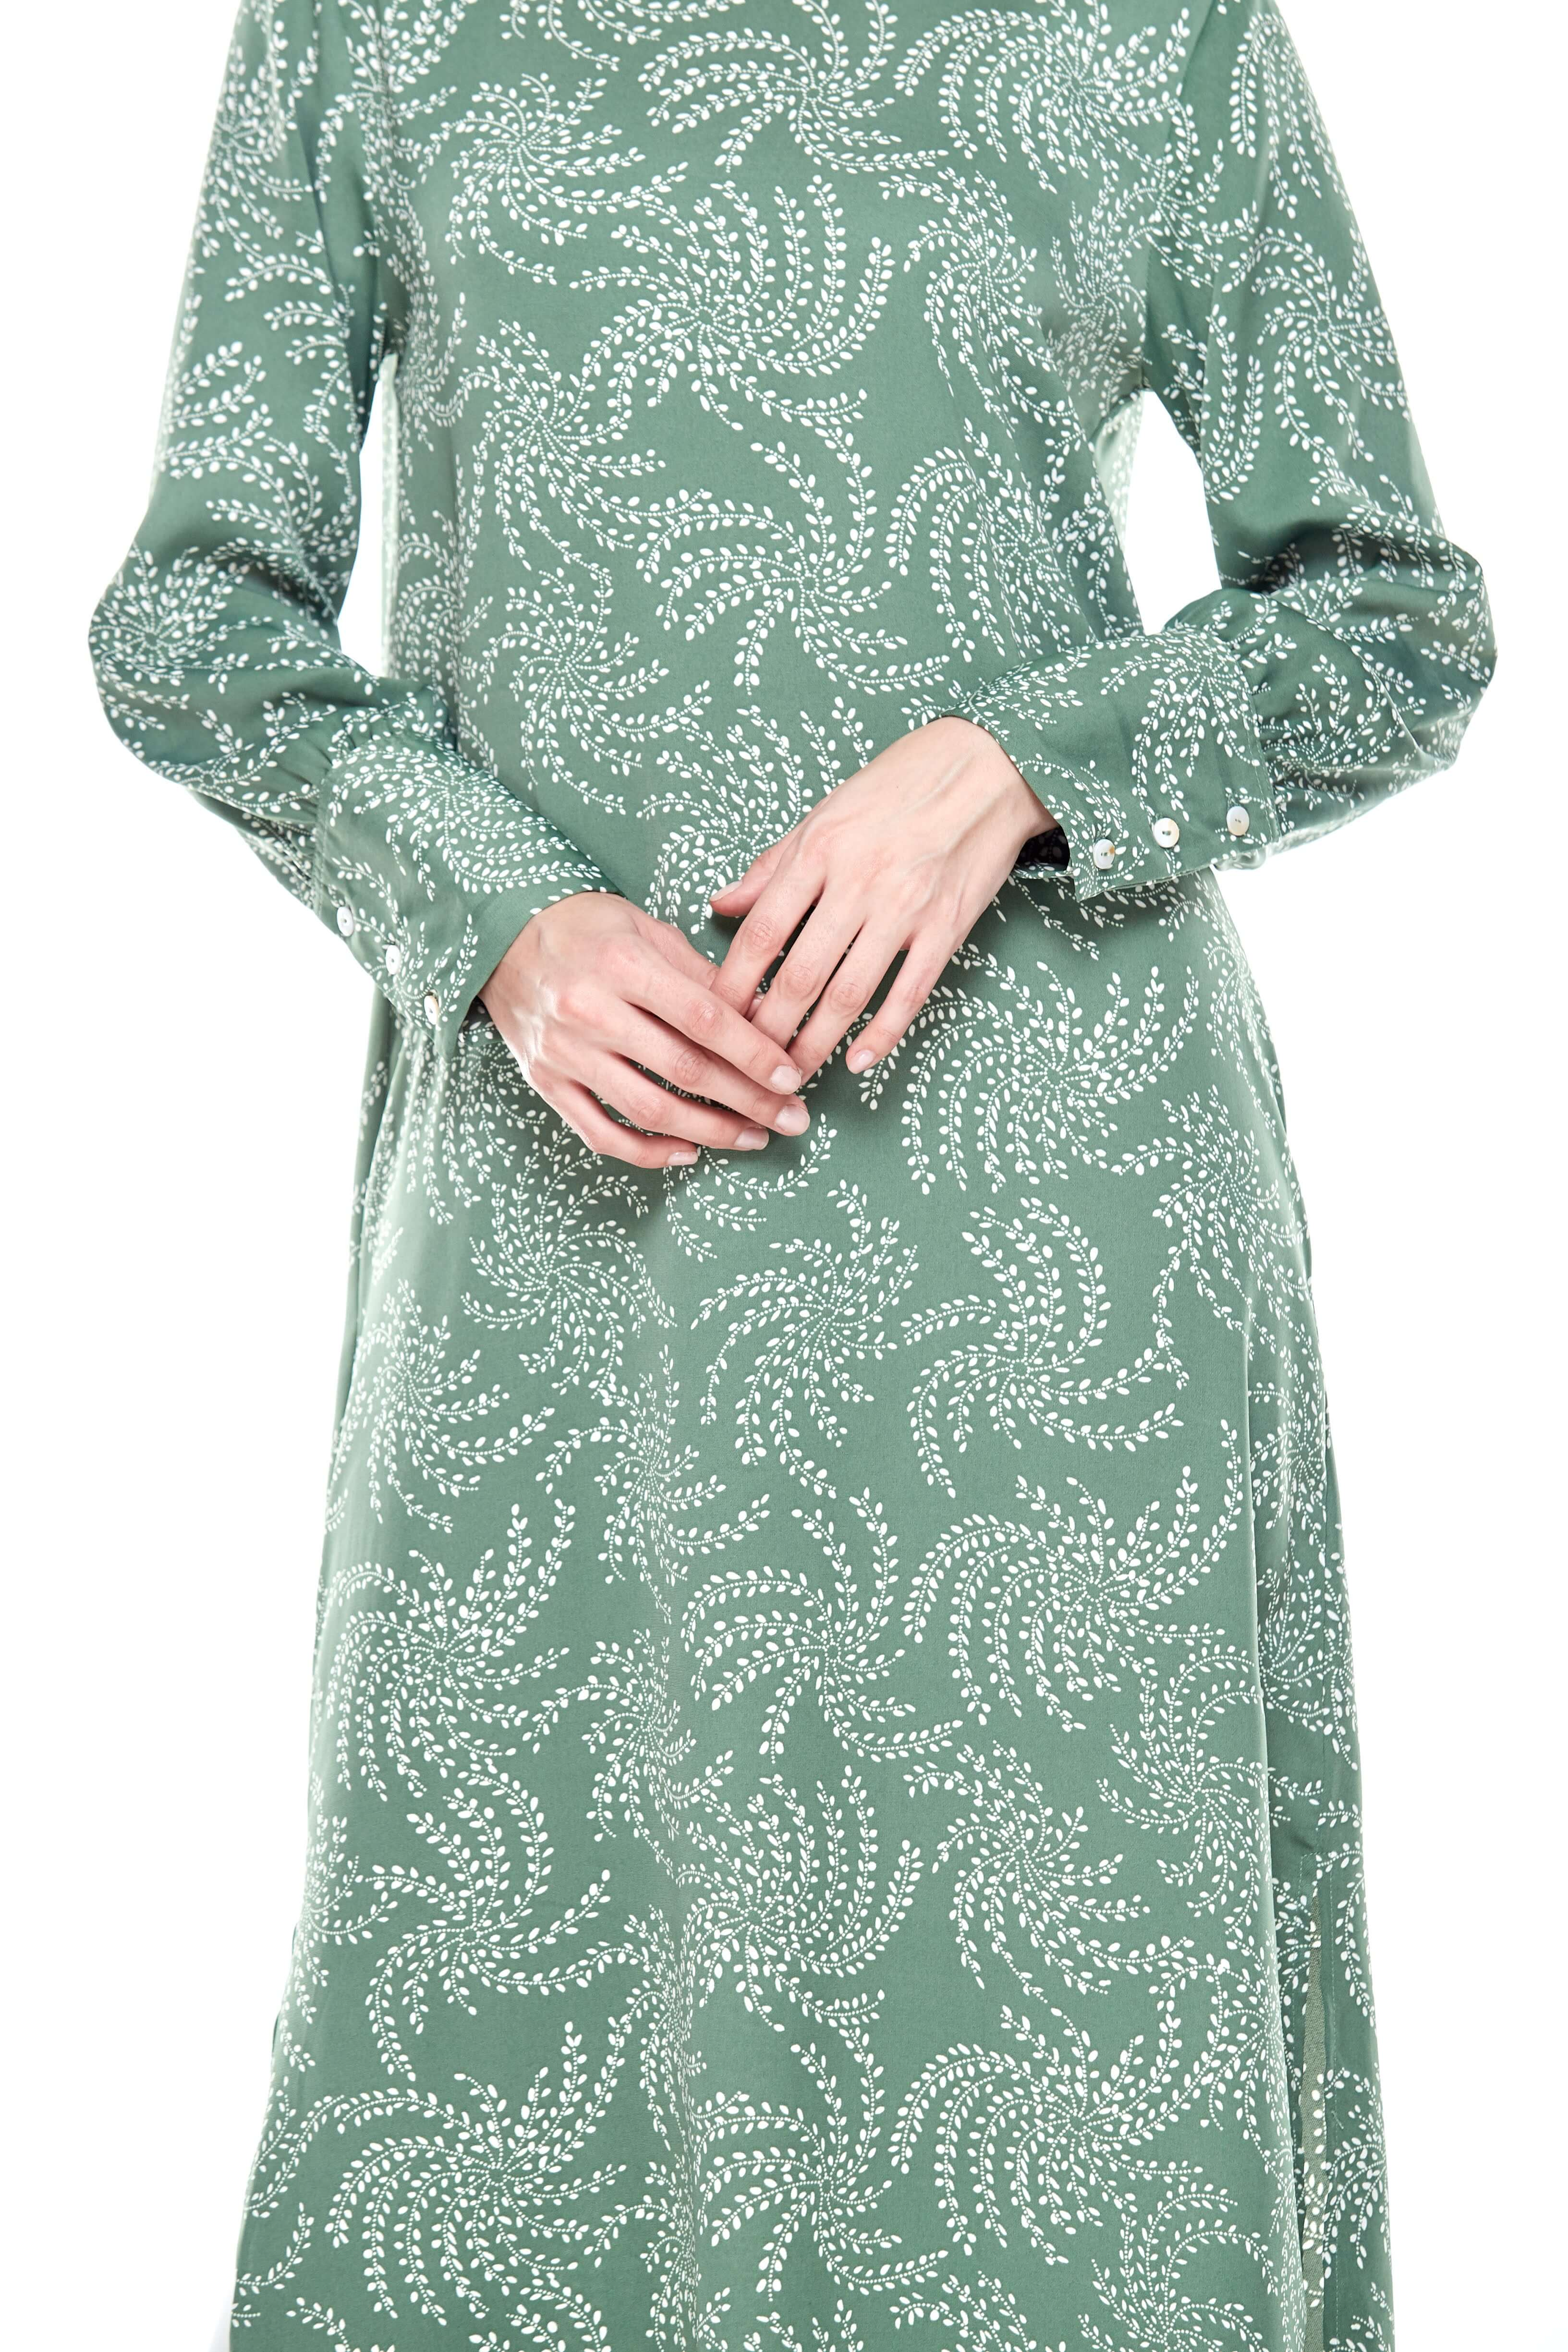 Green Printed Round Neck Dress With Slit (3)